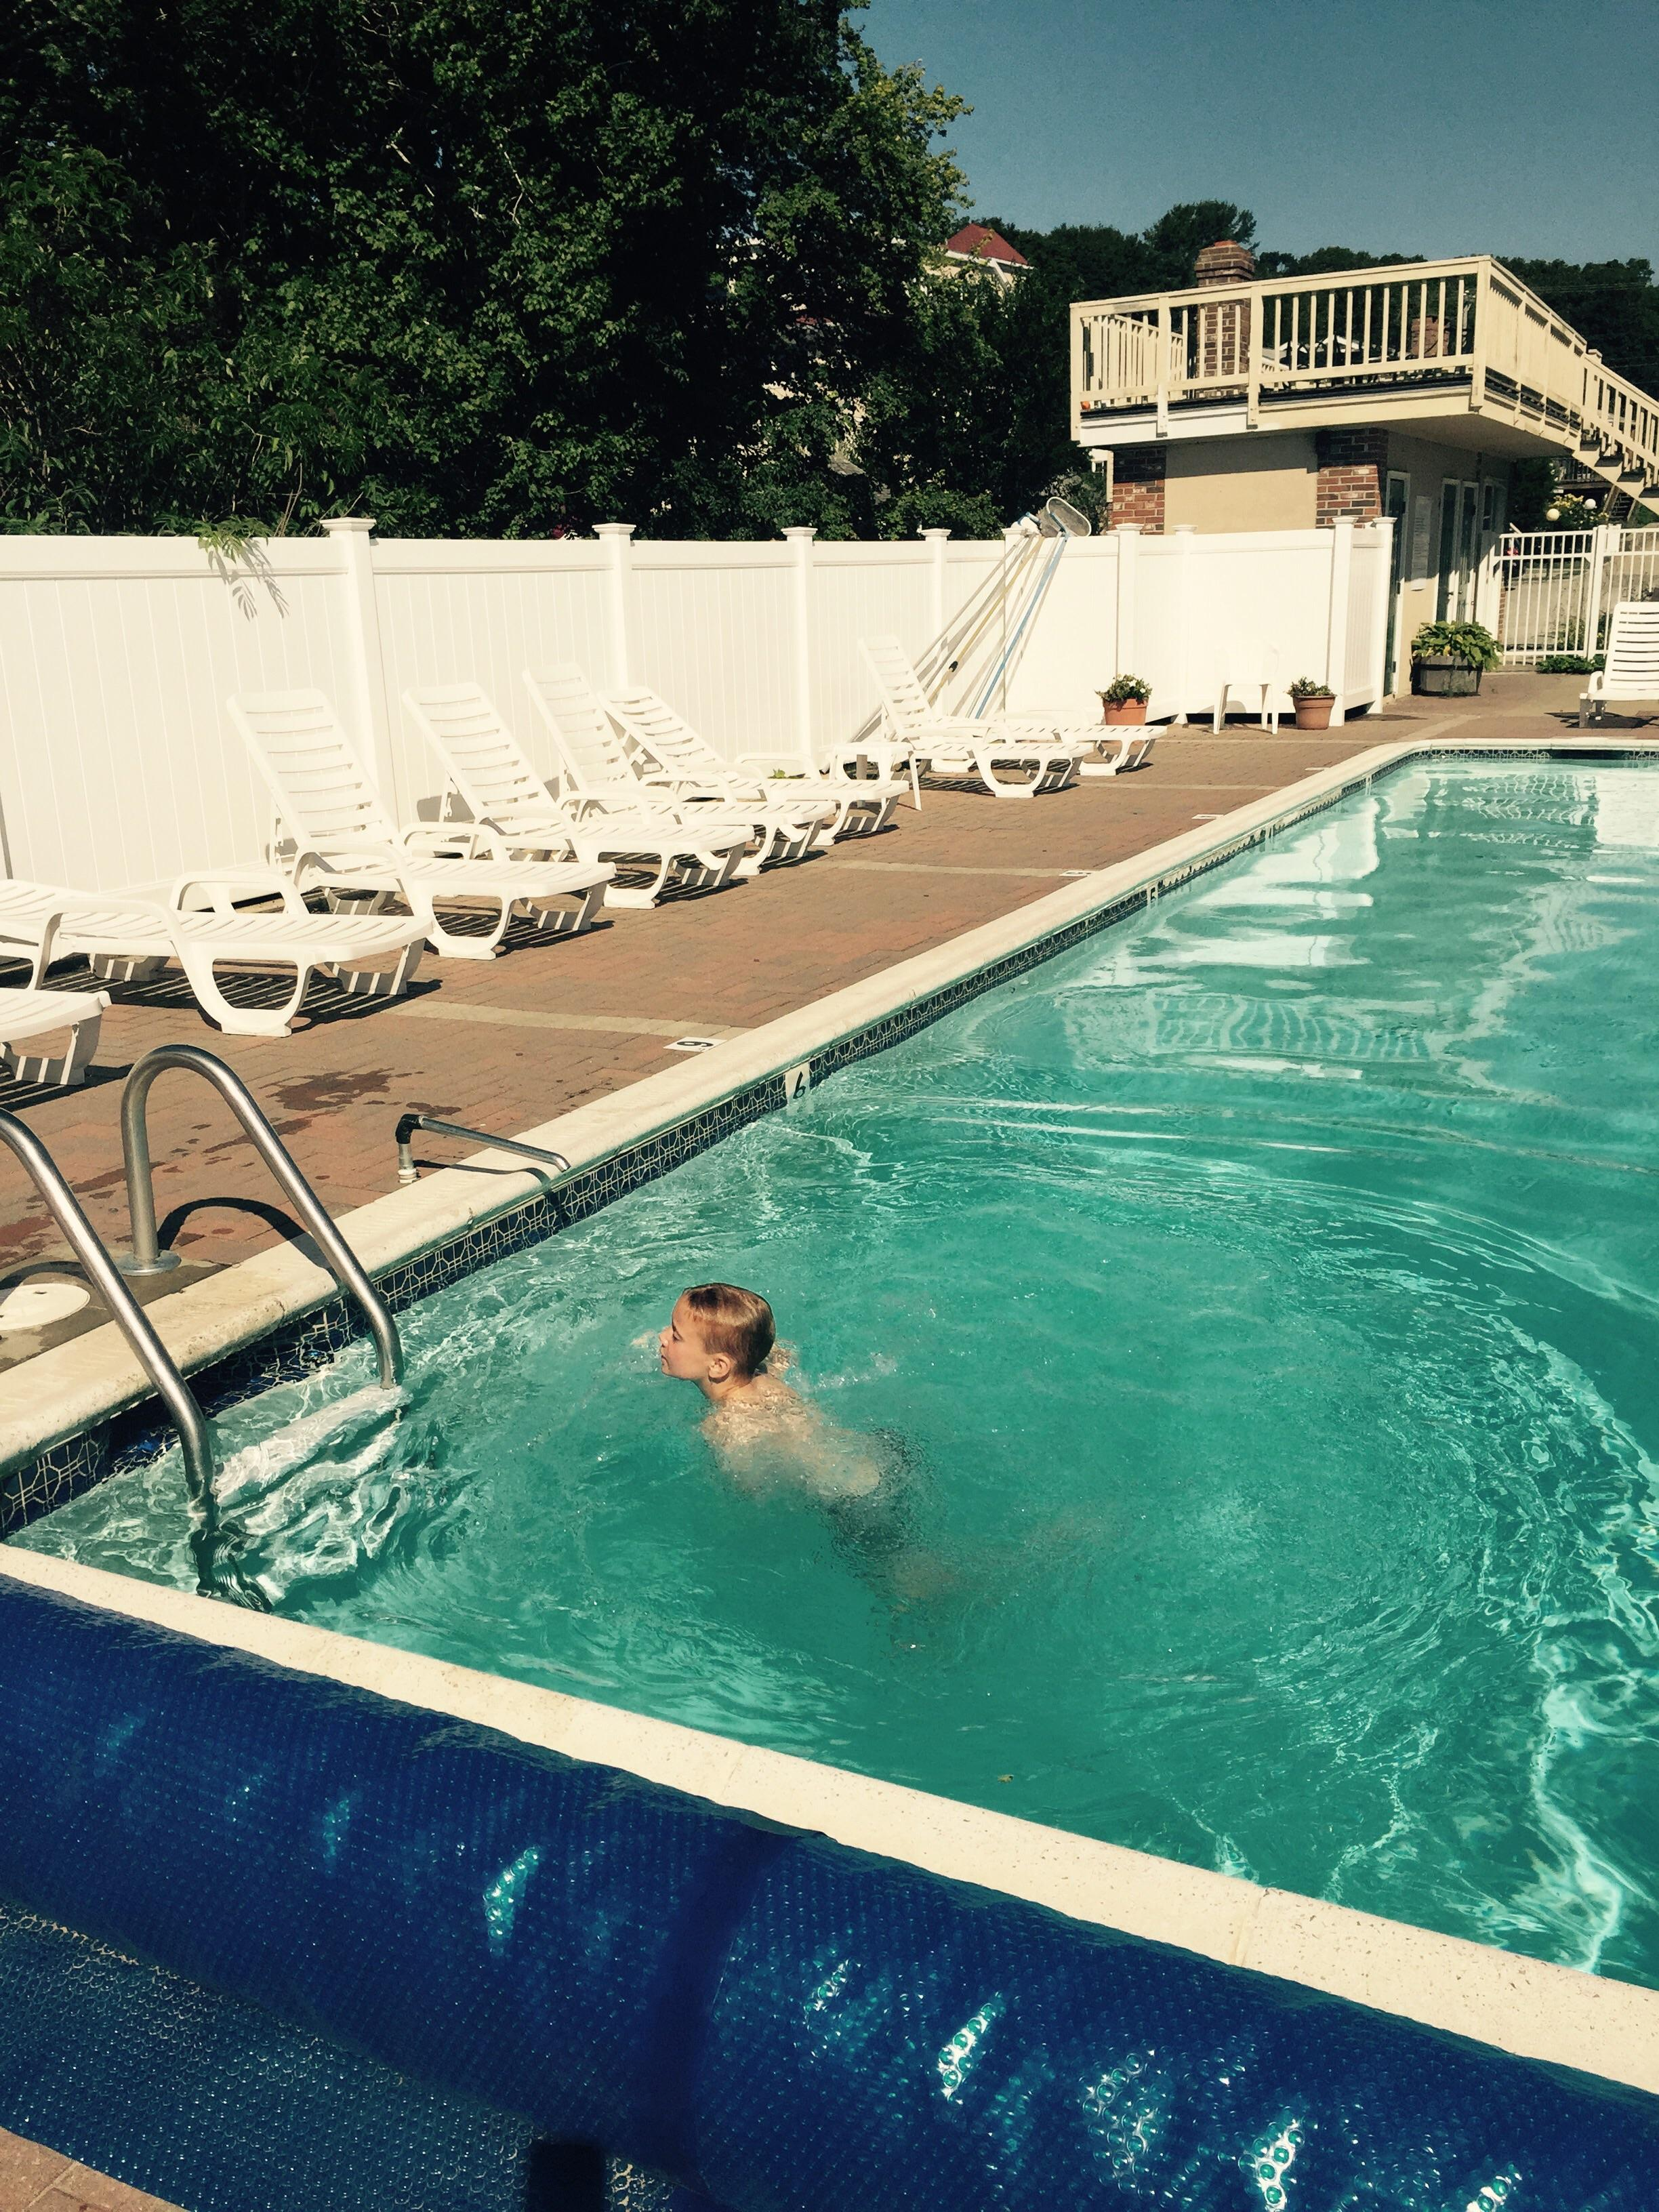 Loved the pool